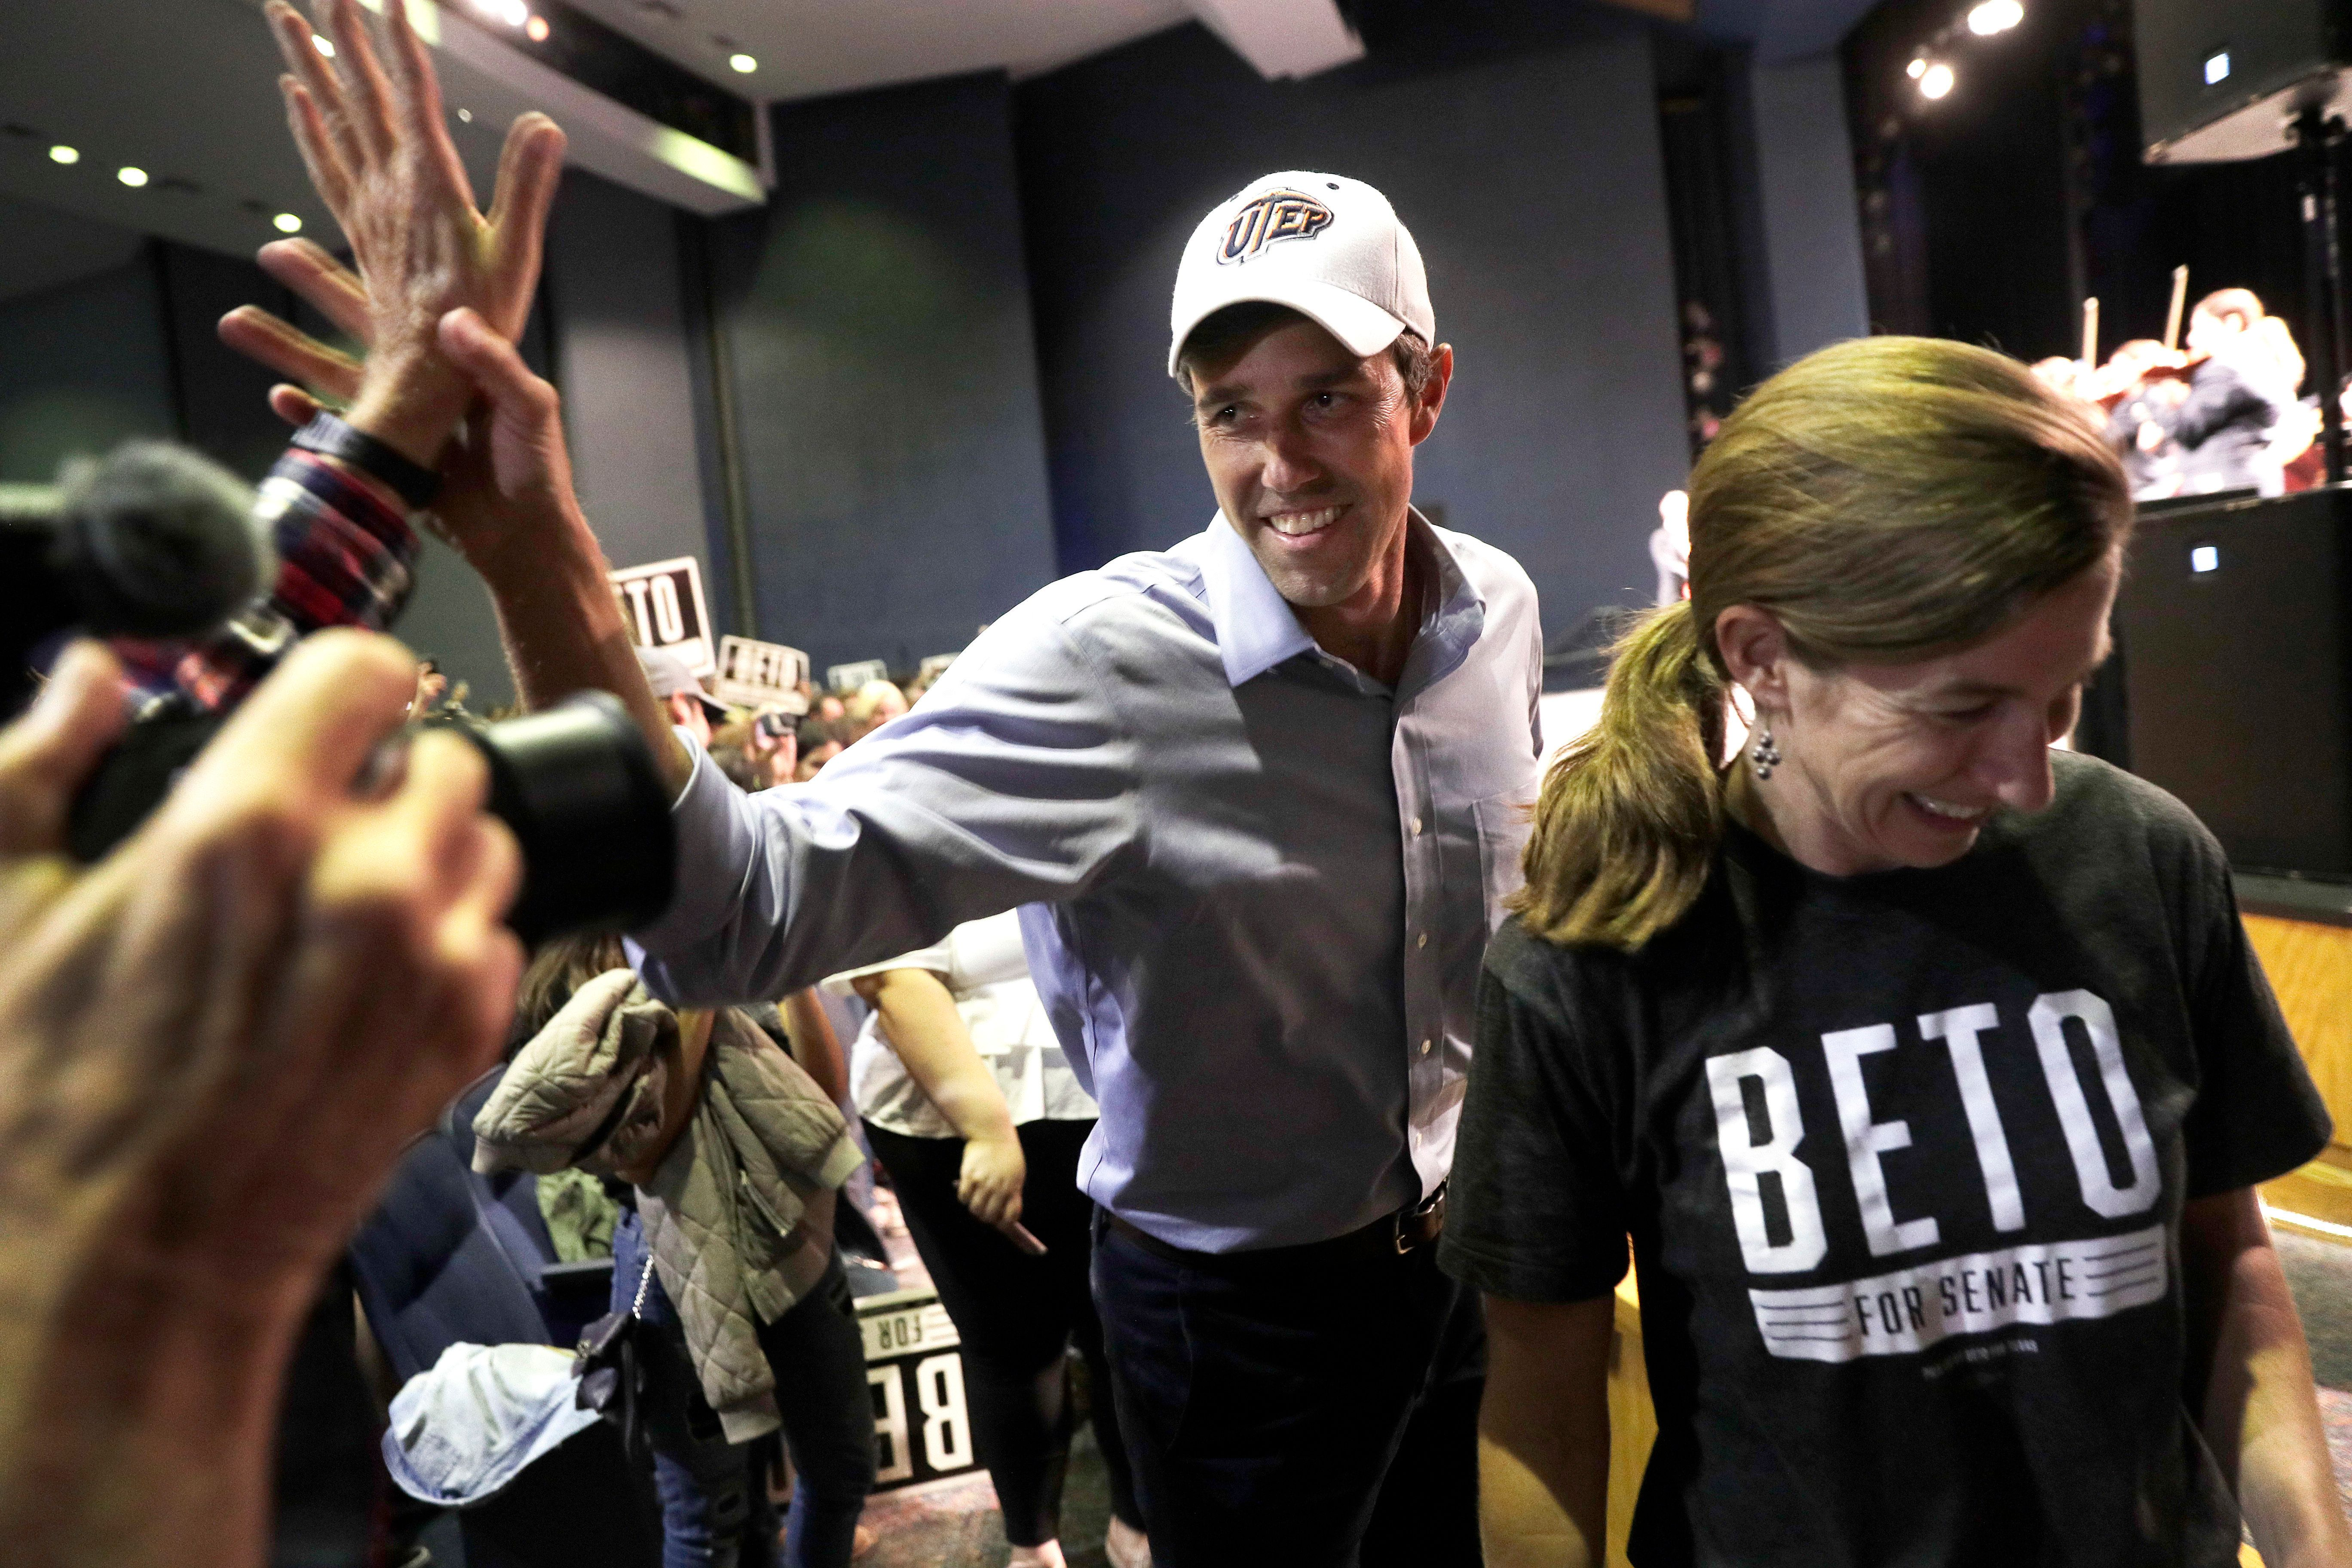 The Luxury Of Being Beto